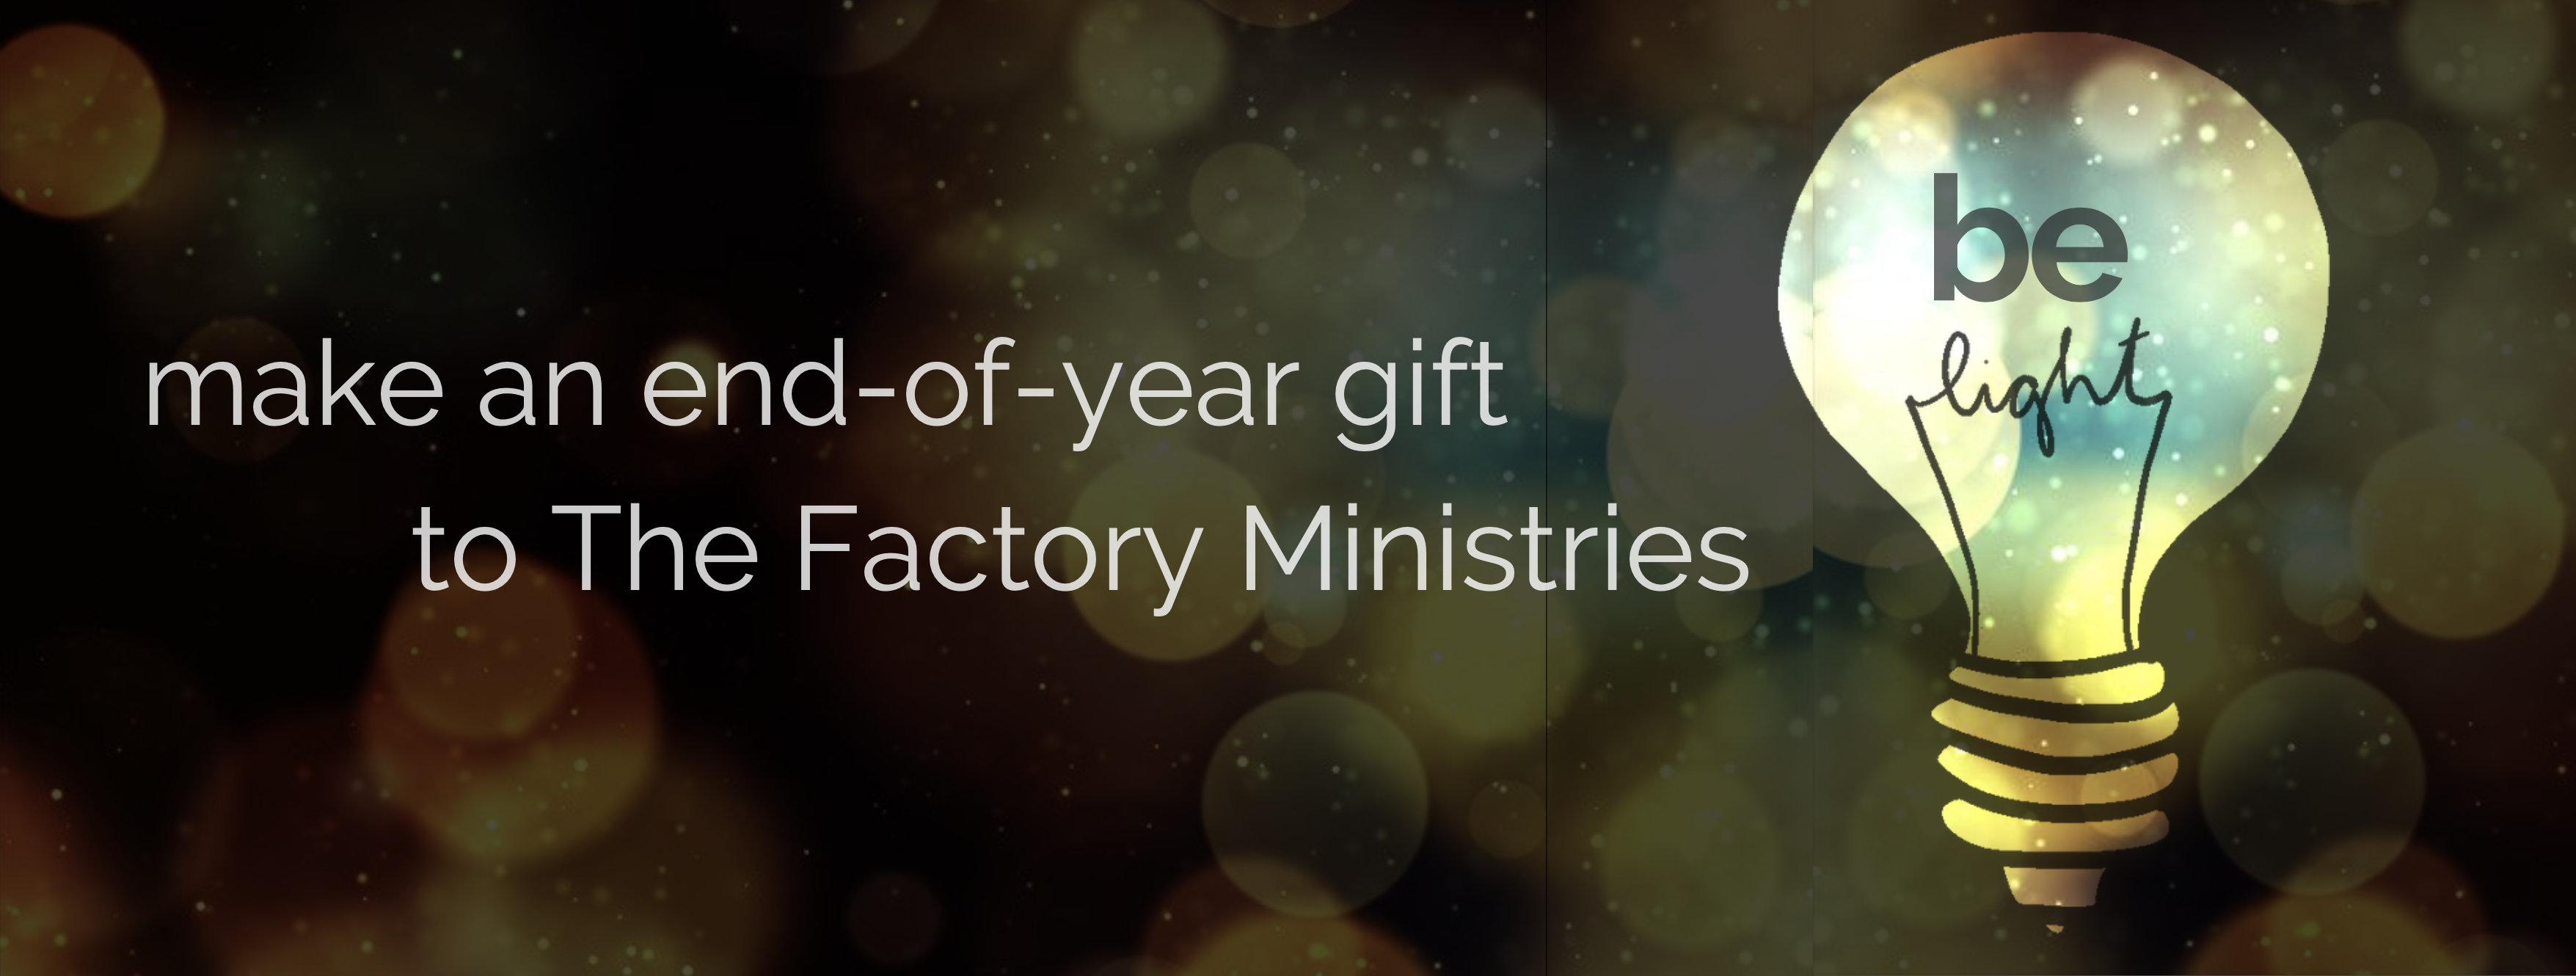 Make an End-of-Year Gift to The Factory Ministries